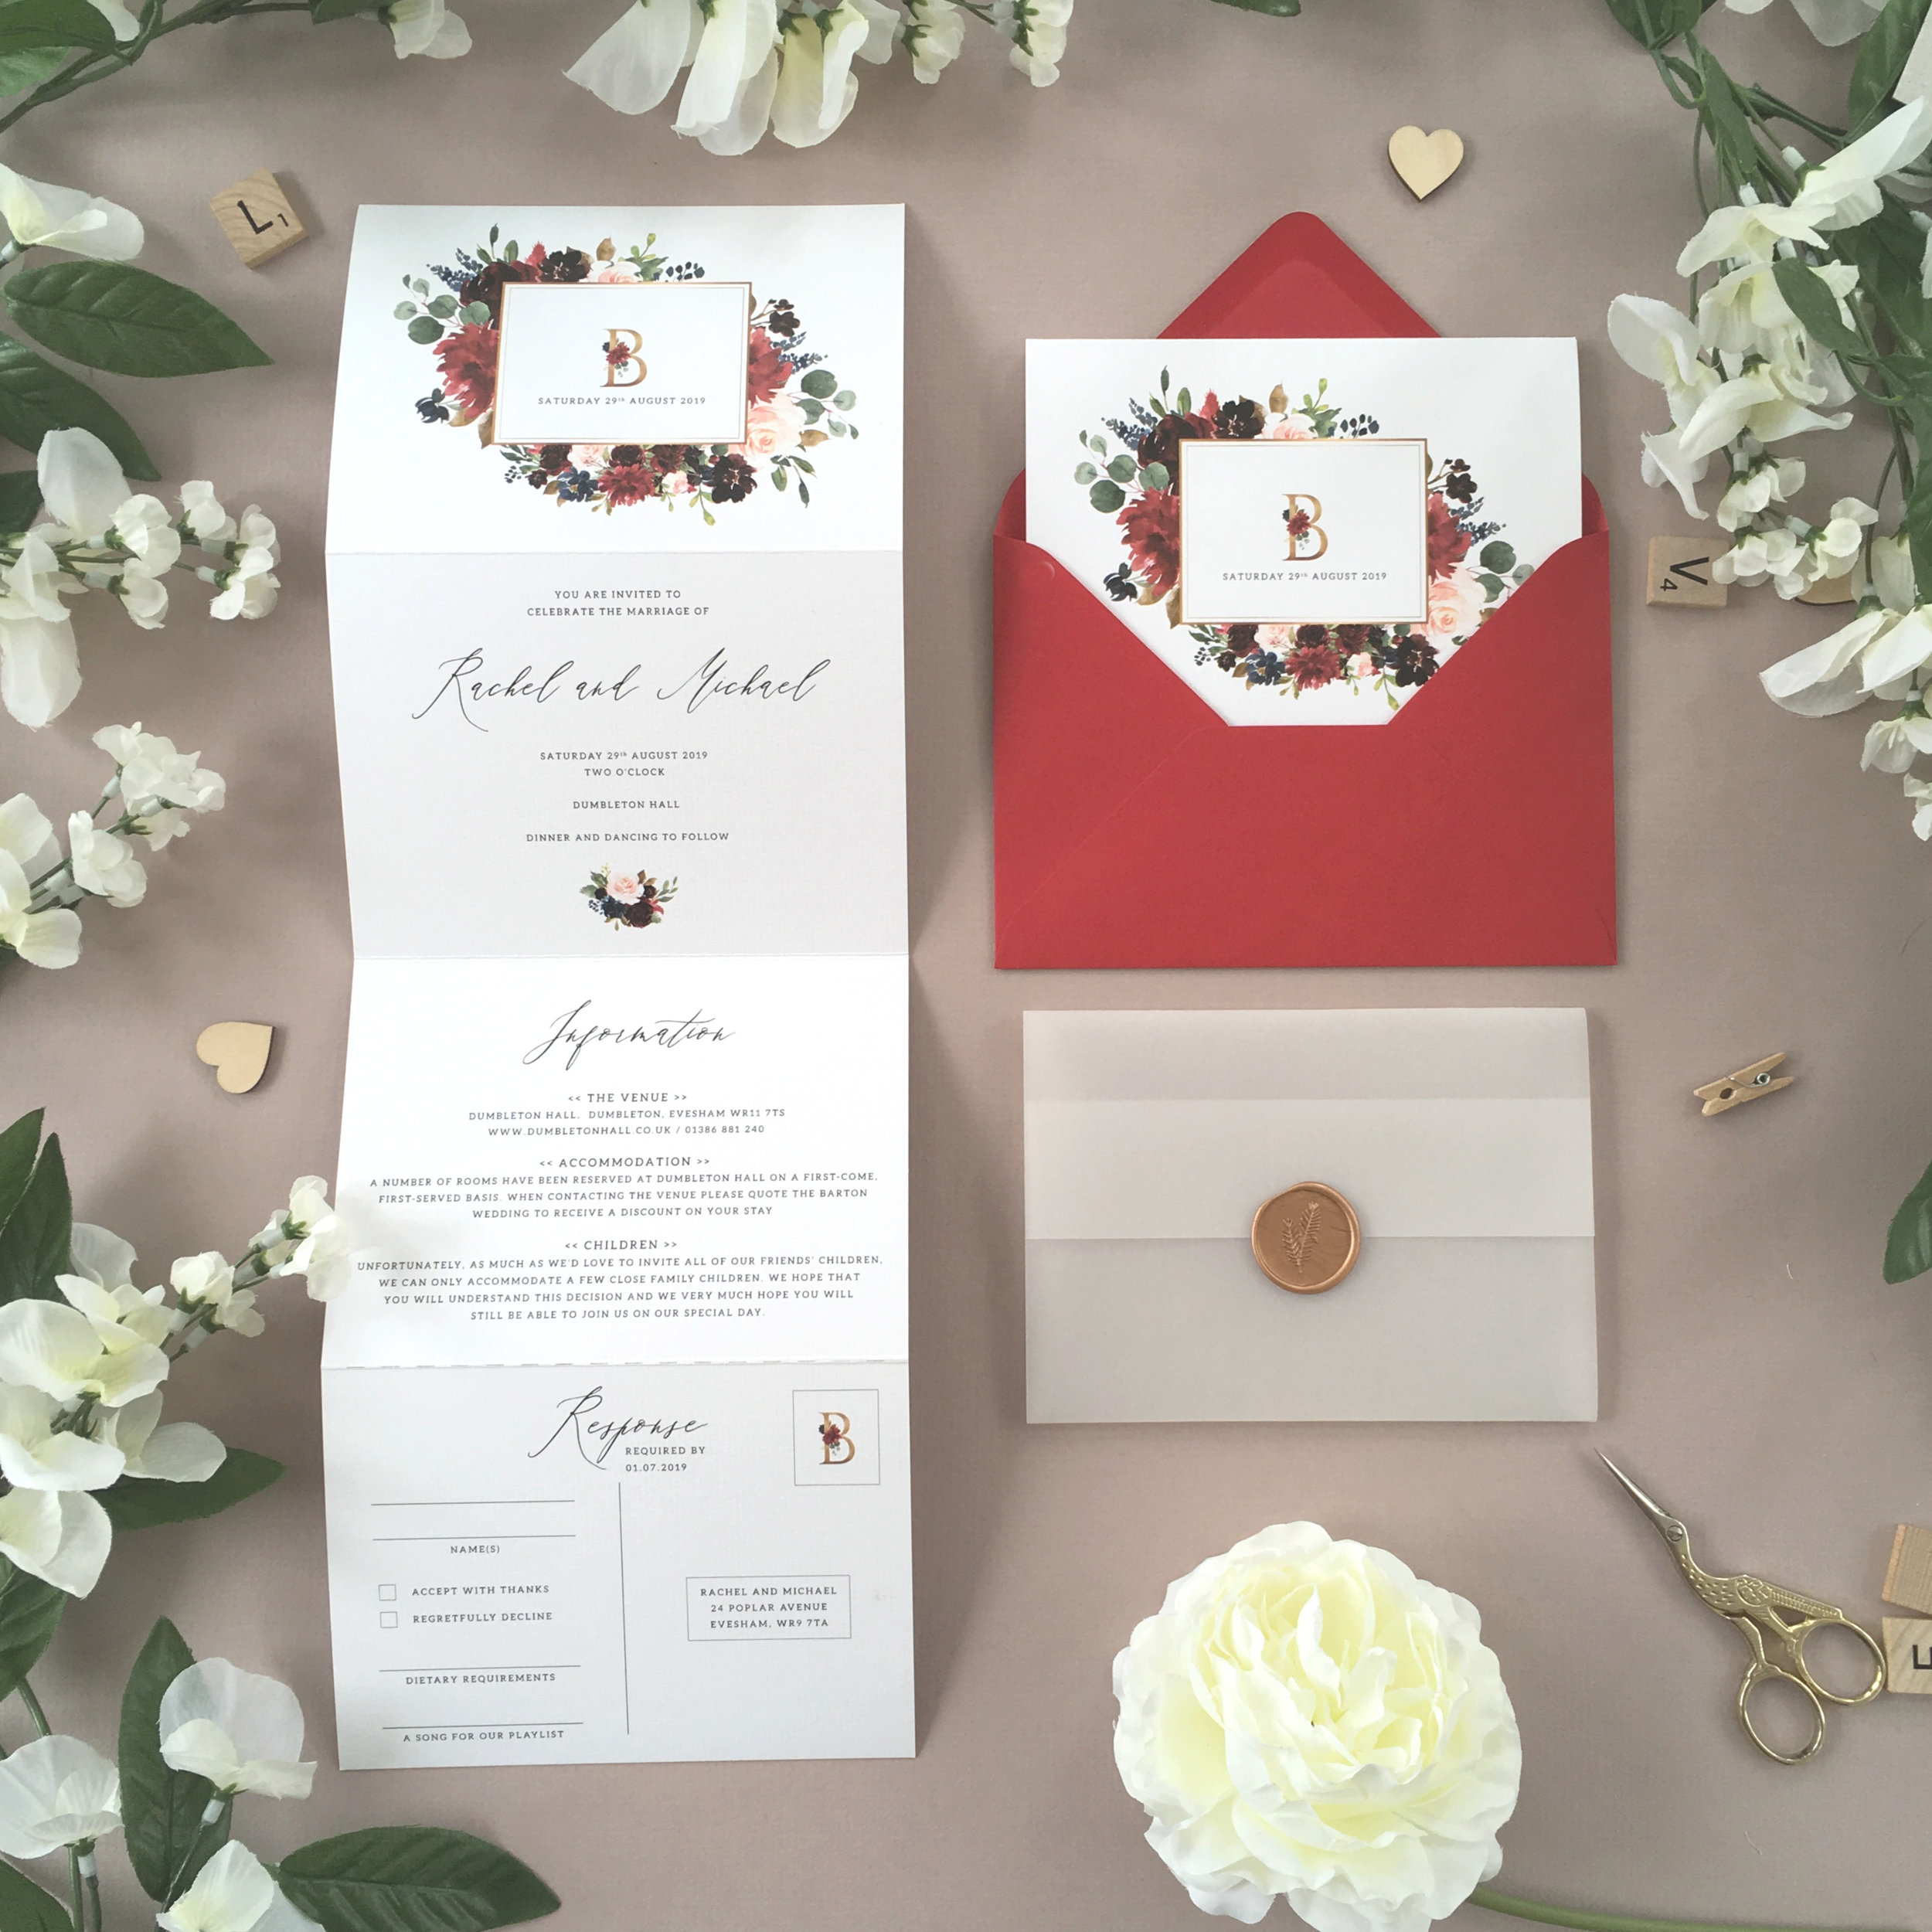 Elm Park - This concertina wedding invitation comes from our colourful and stylish Elm Park collection, combining rich florals and golden accents.Our concertina invitations are a great all-in-one solution, with a detachable RSVP at the bottom of the invitation - all guests need to do is fill in their details, put a stamp in the corner and post!Concertina invitations can be provided on an as-is basis, or can be provided bound with a vellum jacket and timeless wax seal, or tied with ribbon or twine for a lovely hand-finished approach.- Concertina Invitation - from £1.95- Ribbon or Twine - £0.40- Vellum Jacket - £0.40- Wax Seal - £0.85 (Custom engraving also available)White envelope provided as standard with coloured upgrade available.